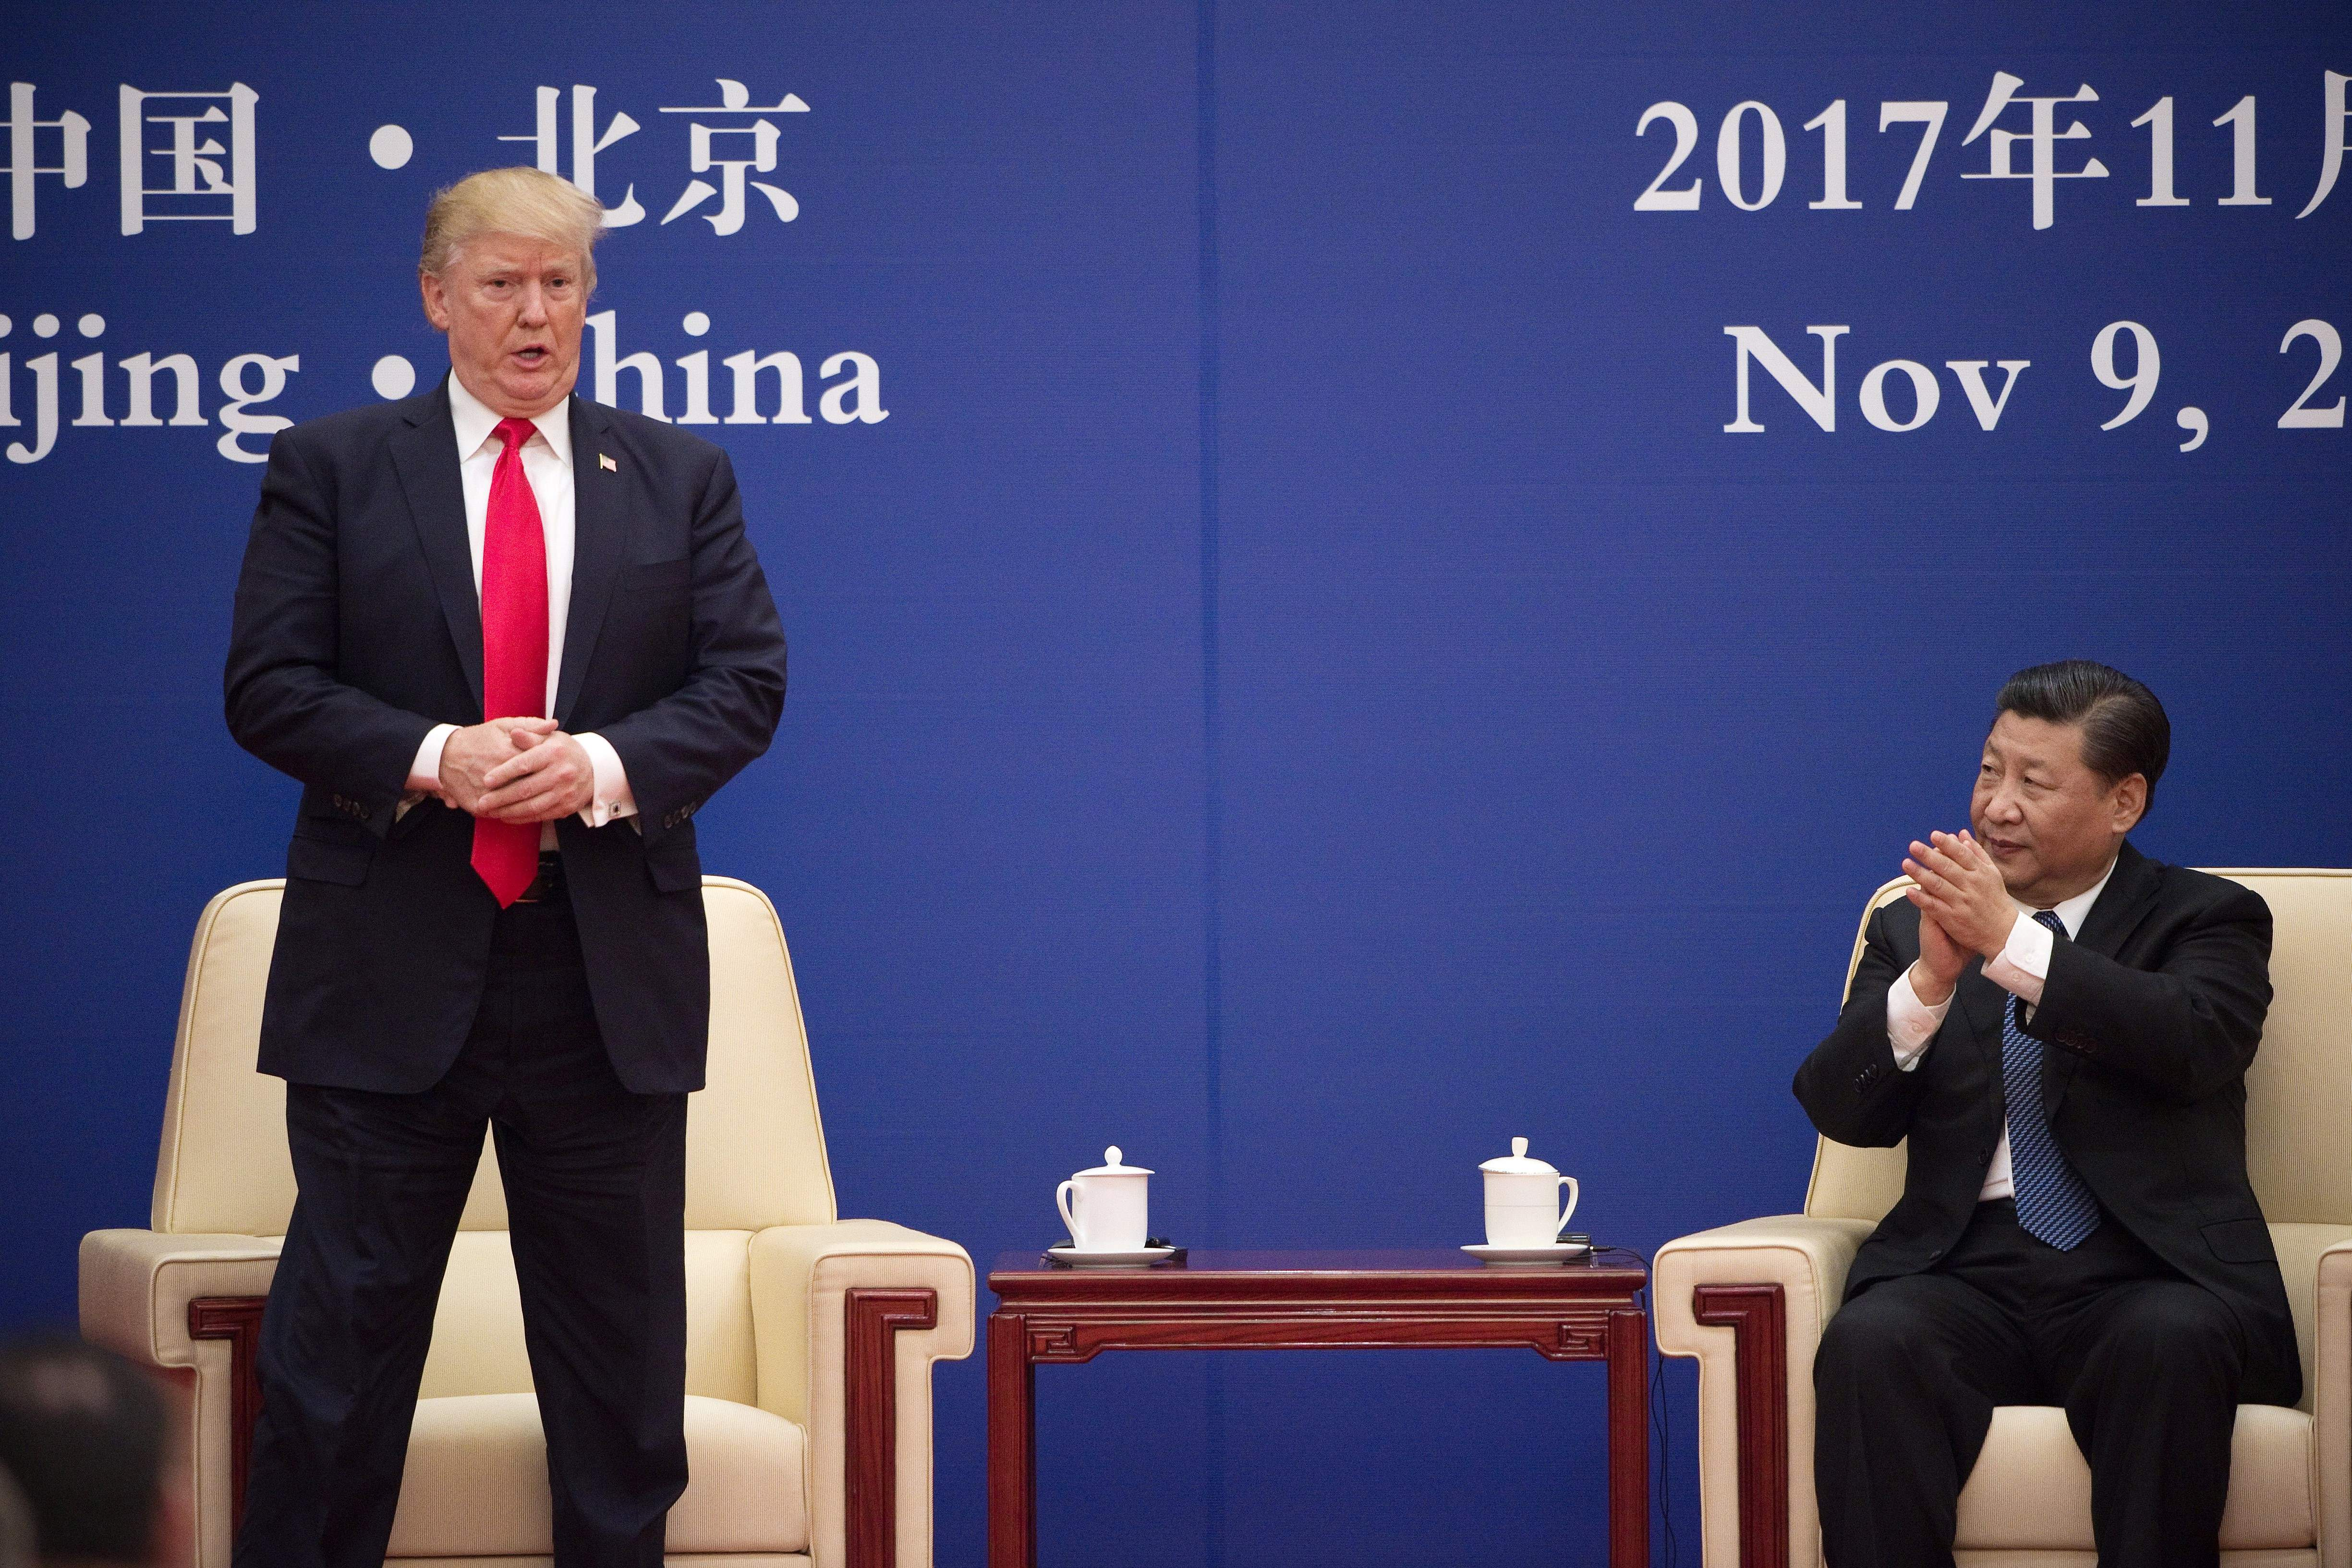 "US President Donald Trump stands during a business leaders event and is applauded by China's President Xi Jinping inside the Great Hall of the People in Beijing on November 9, 2017. Donald Trump urged Chinese leader Xi Jinping to work ""hard"" and act fast to help resolve the North Korean nuclear crisis during their meeting in Beijing, warning that ""time is quickly running out."" (Photo: NICOLAS ASFOURI/AFP/Getty Images)"